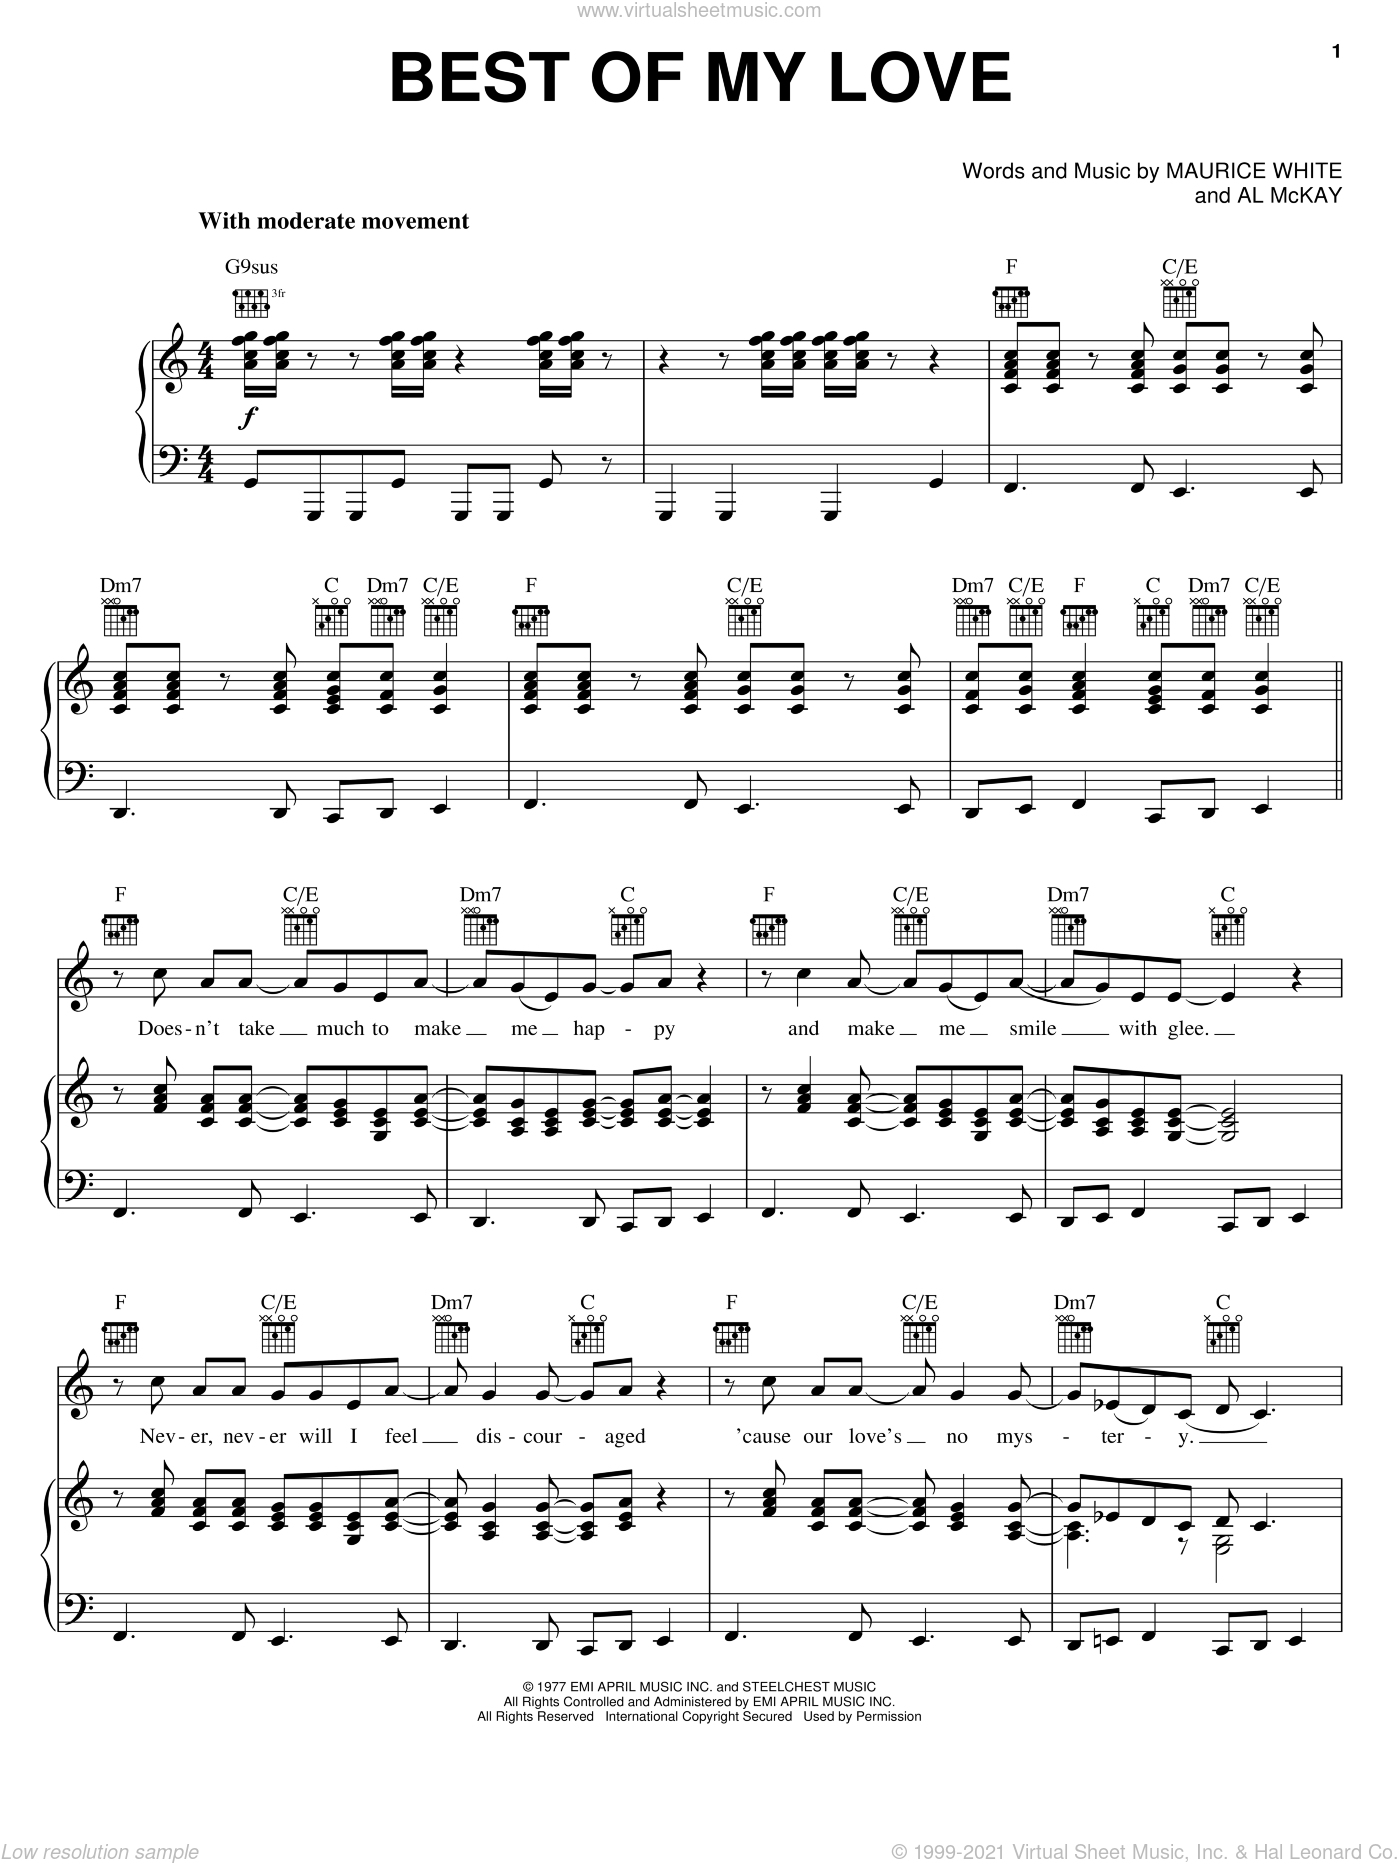 Best Of My Love sheet music for voice, piano or guitar by Maurice White